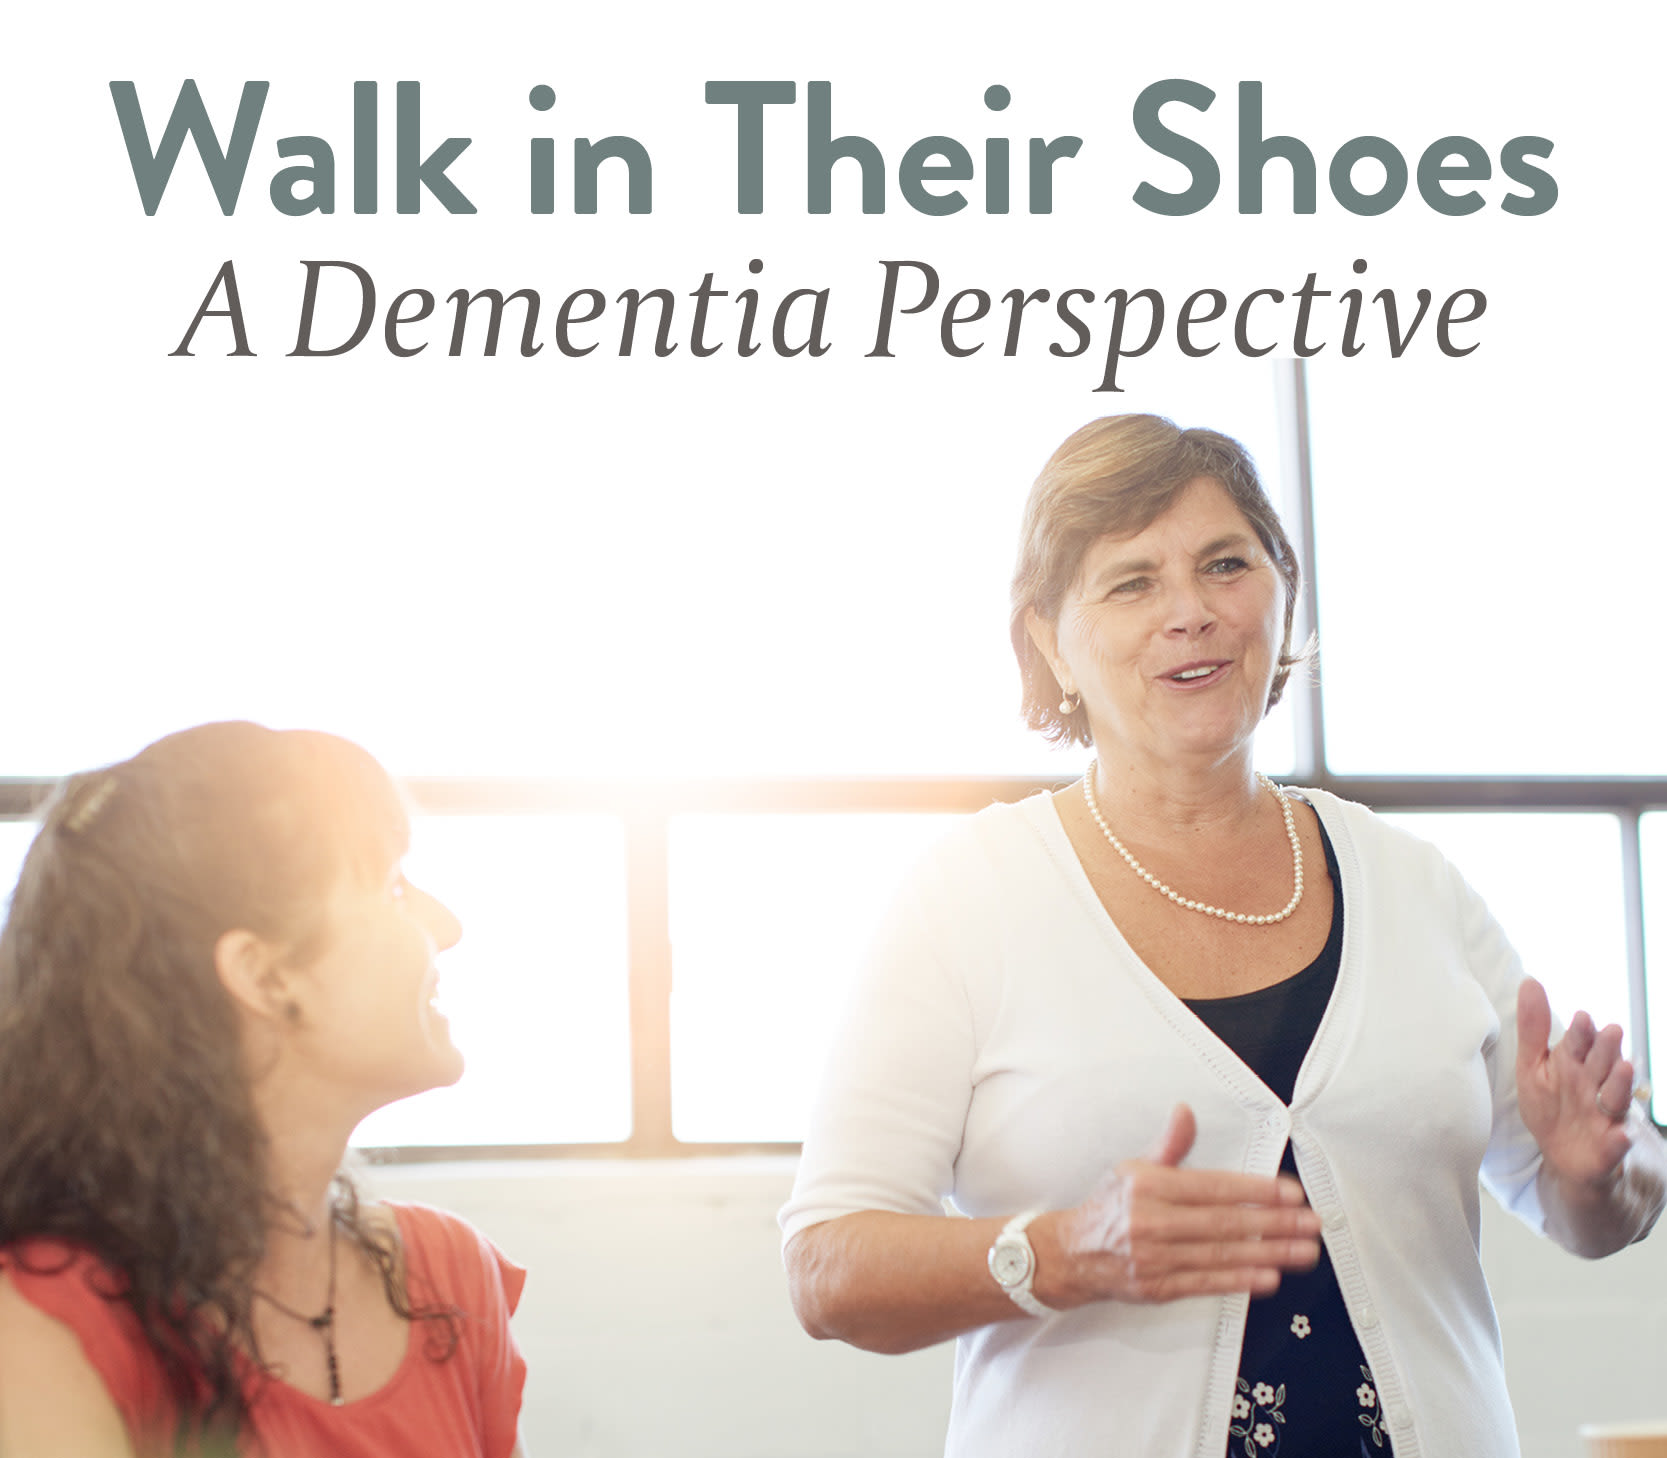 Join us for a Walk in Their Shoes event at Anthology of Louisville in Louisville, Kentucky